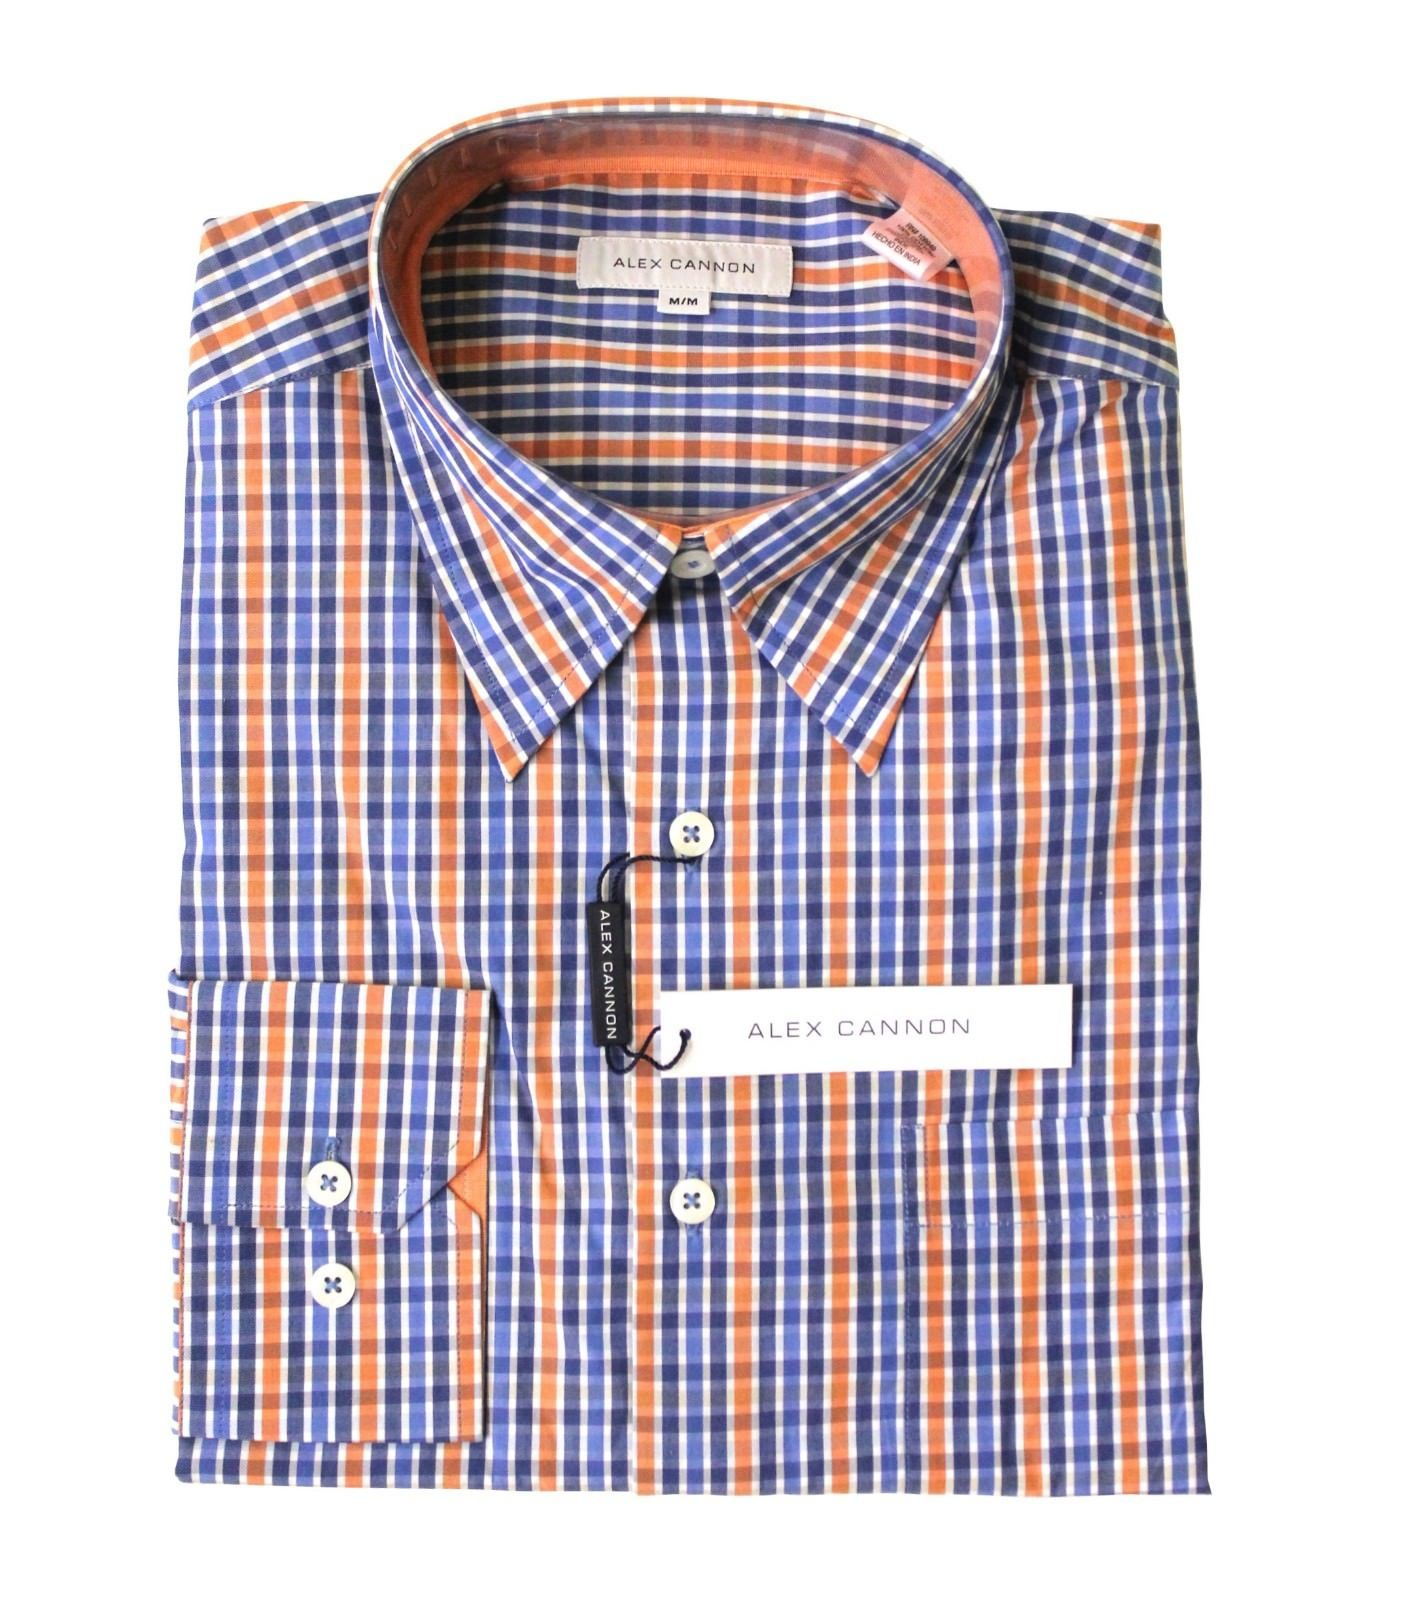 Alex Cannon Men's Dress Shirt, Blue & Orange Stripes, NWT